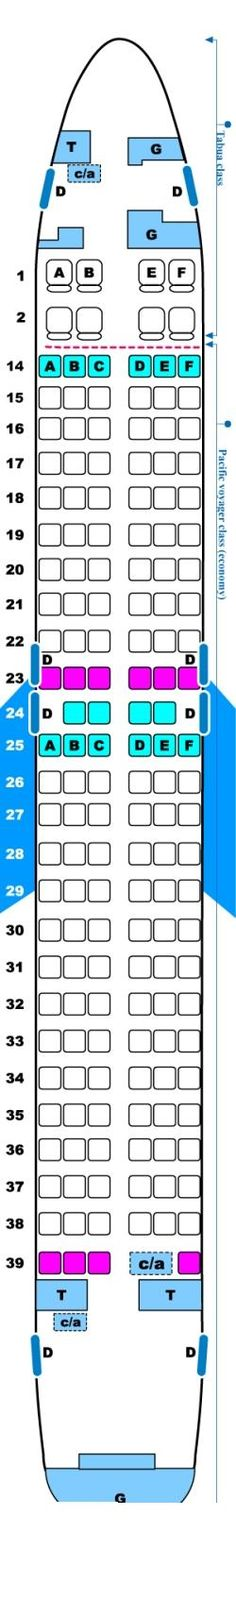 Seat Map Air Pacific Boeing B737 800 - Aircraft Seats